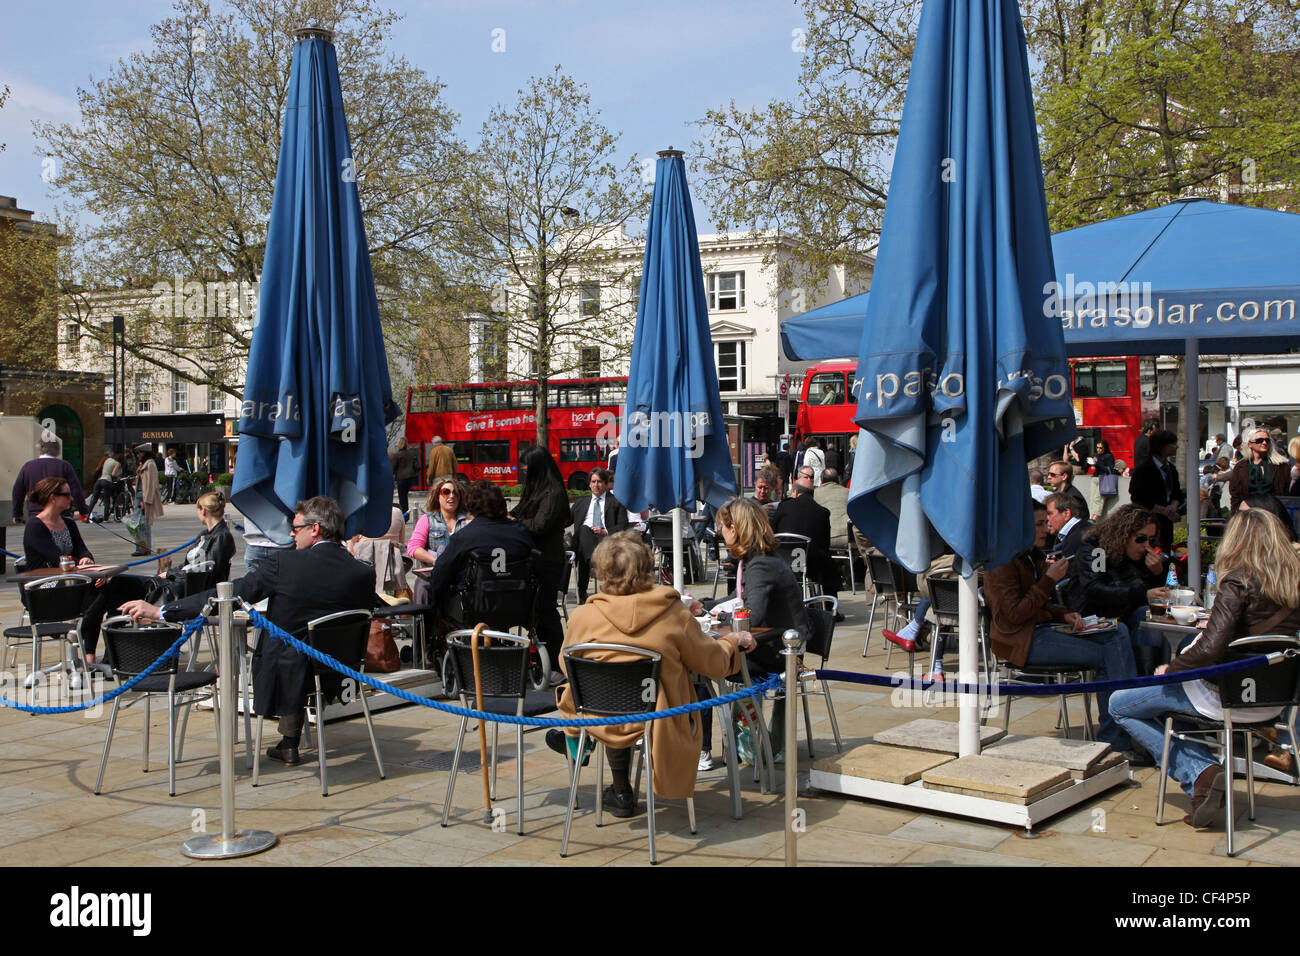 People sitting at tables at a pavement cafe on the King's Road in Chelsea. Stock Photo